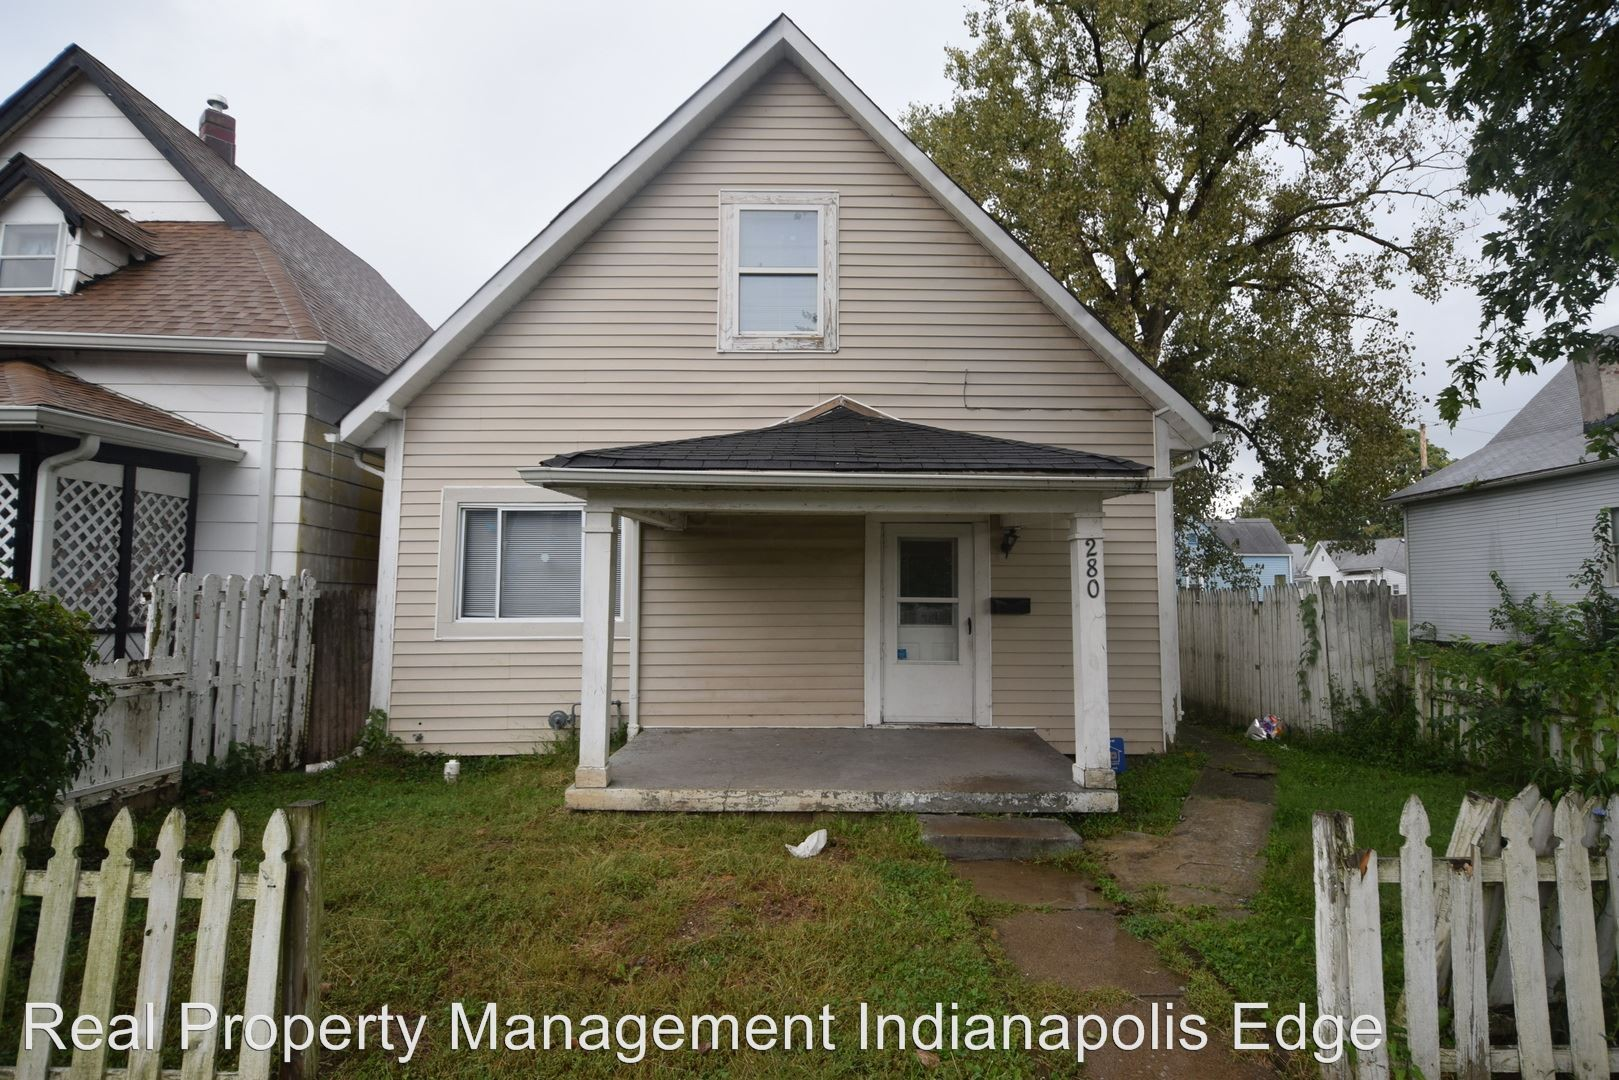 4 Bedroom Houses For Rent In Indianapolis Westside Indianapolis Homes For Rent